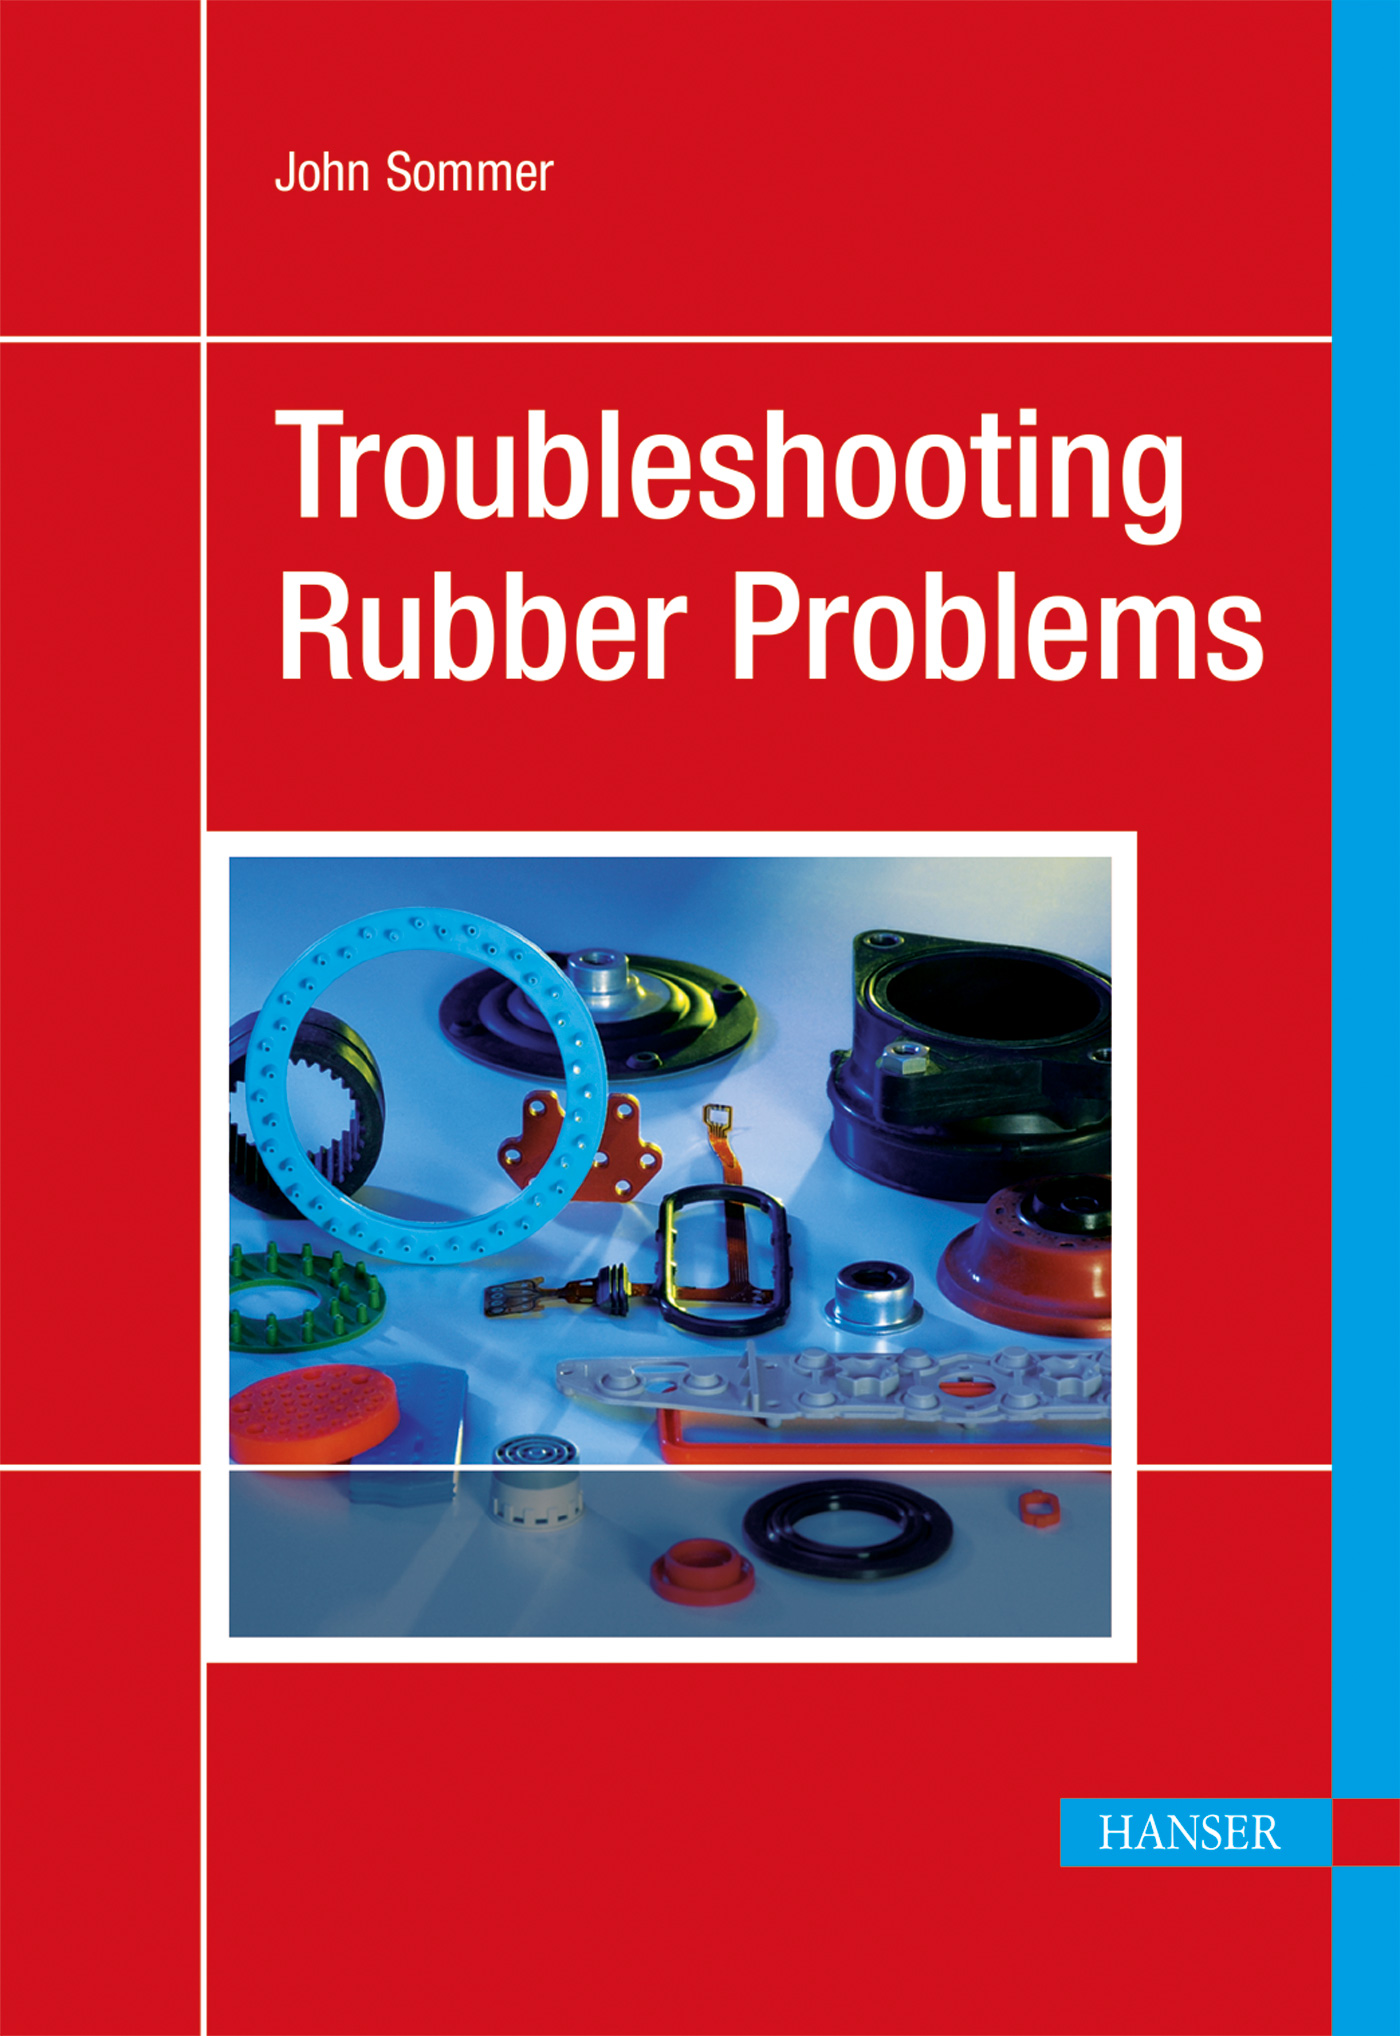 Sommer, Troubleshooting Rubber Problems (Print-on-Demand), 978-1-56990-553-1